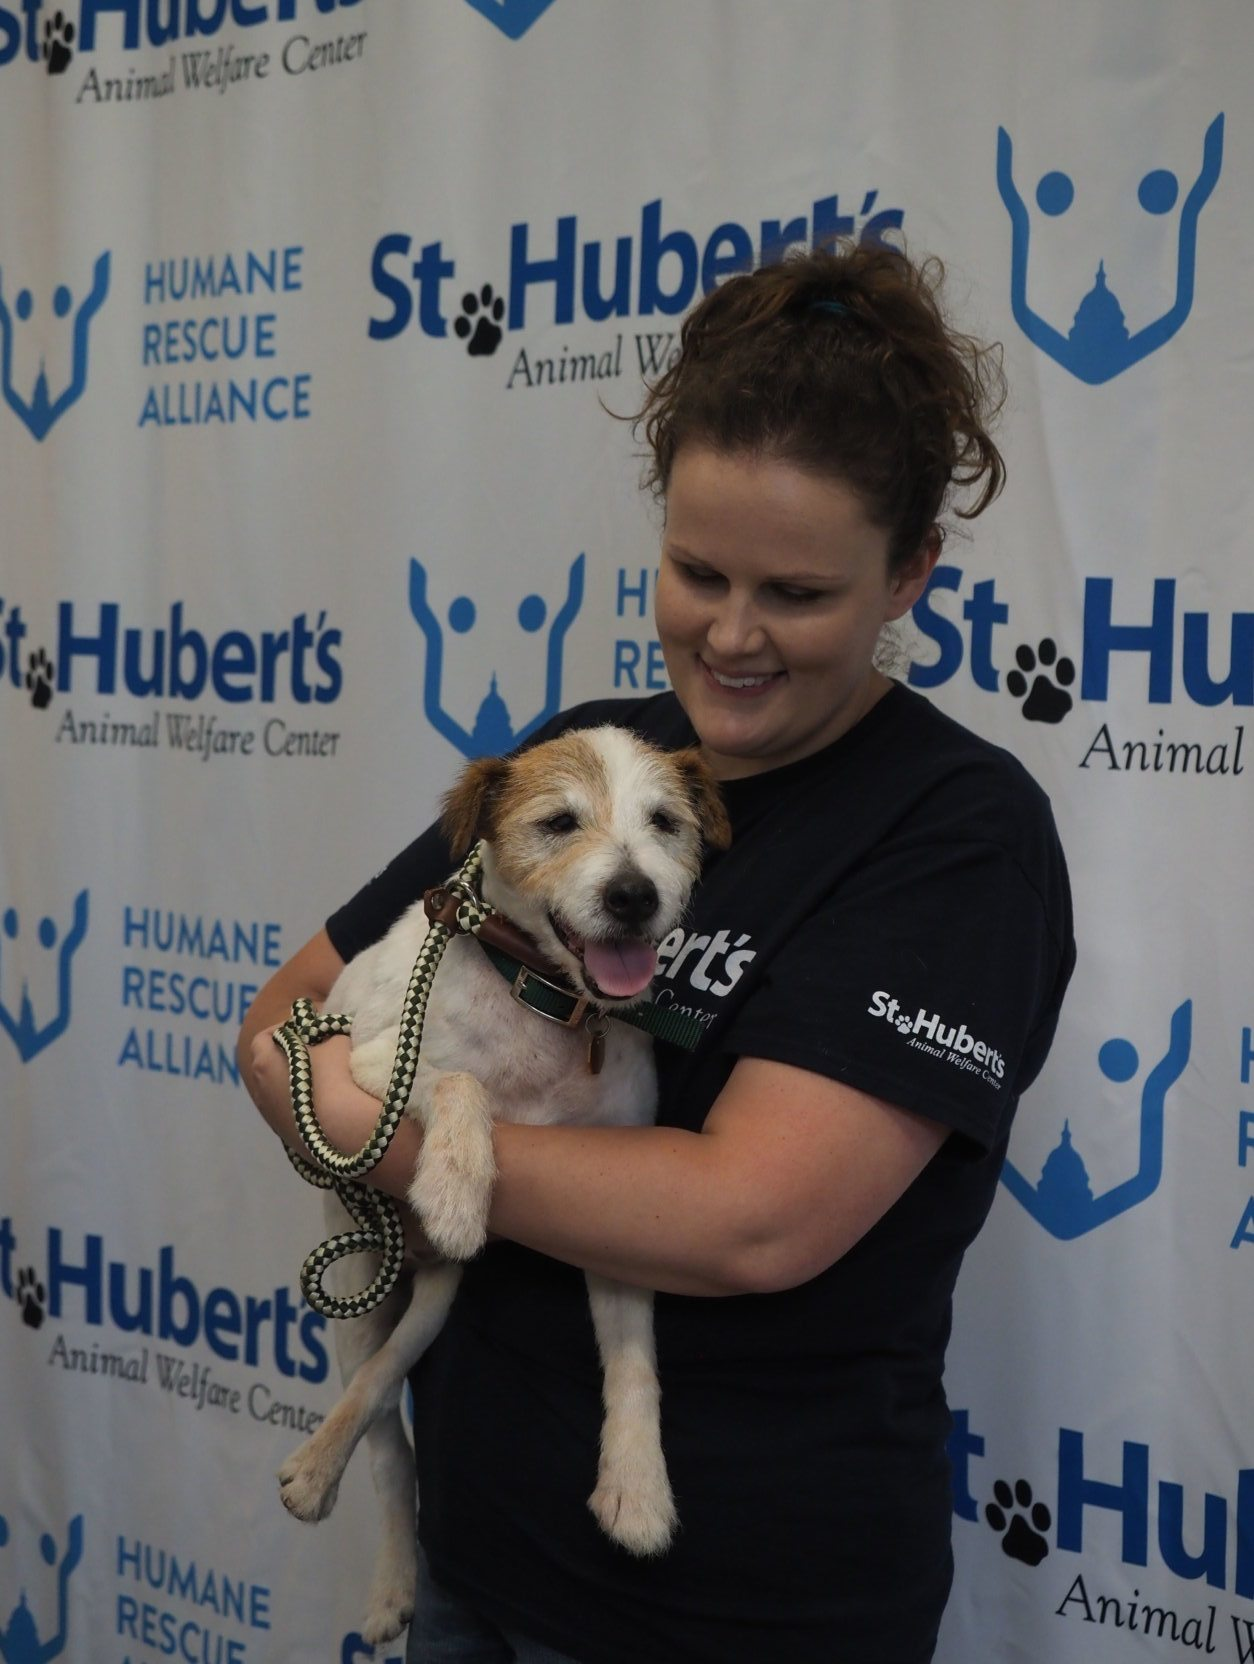 St. Hubert's Animal Welfare staff holding dog